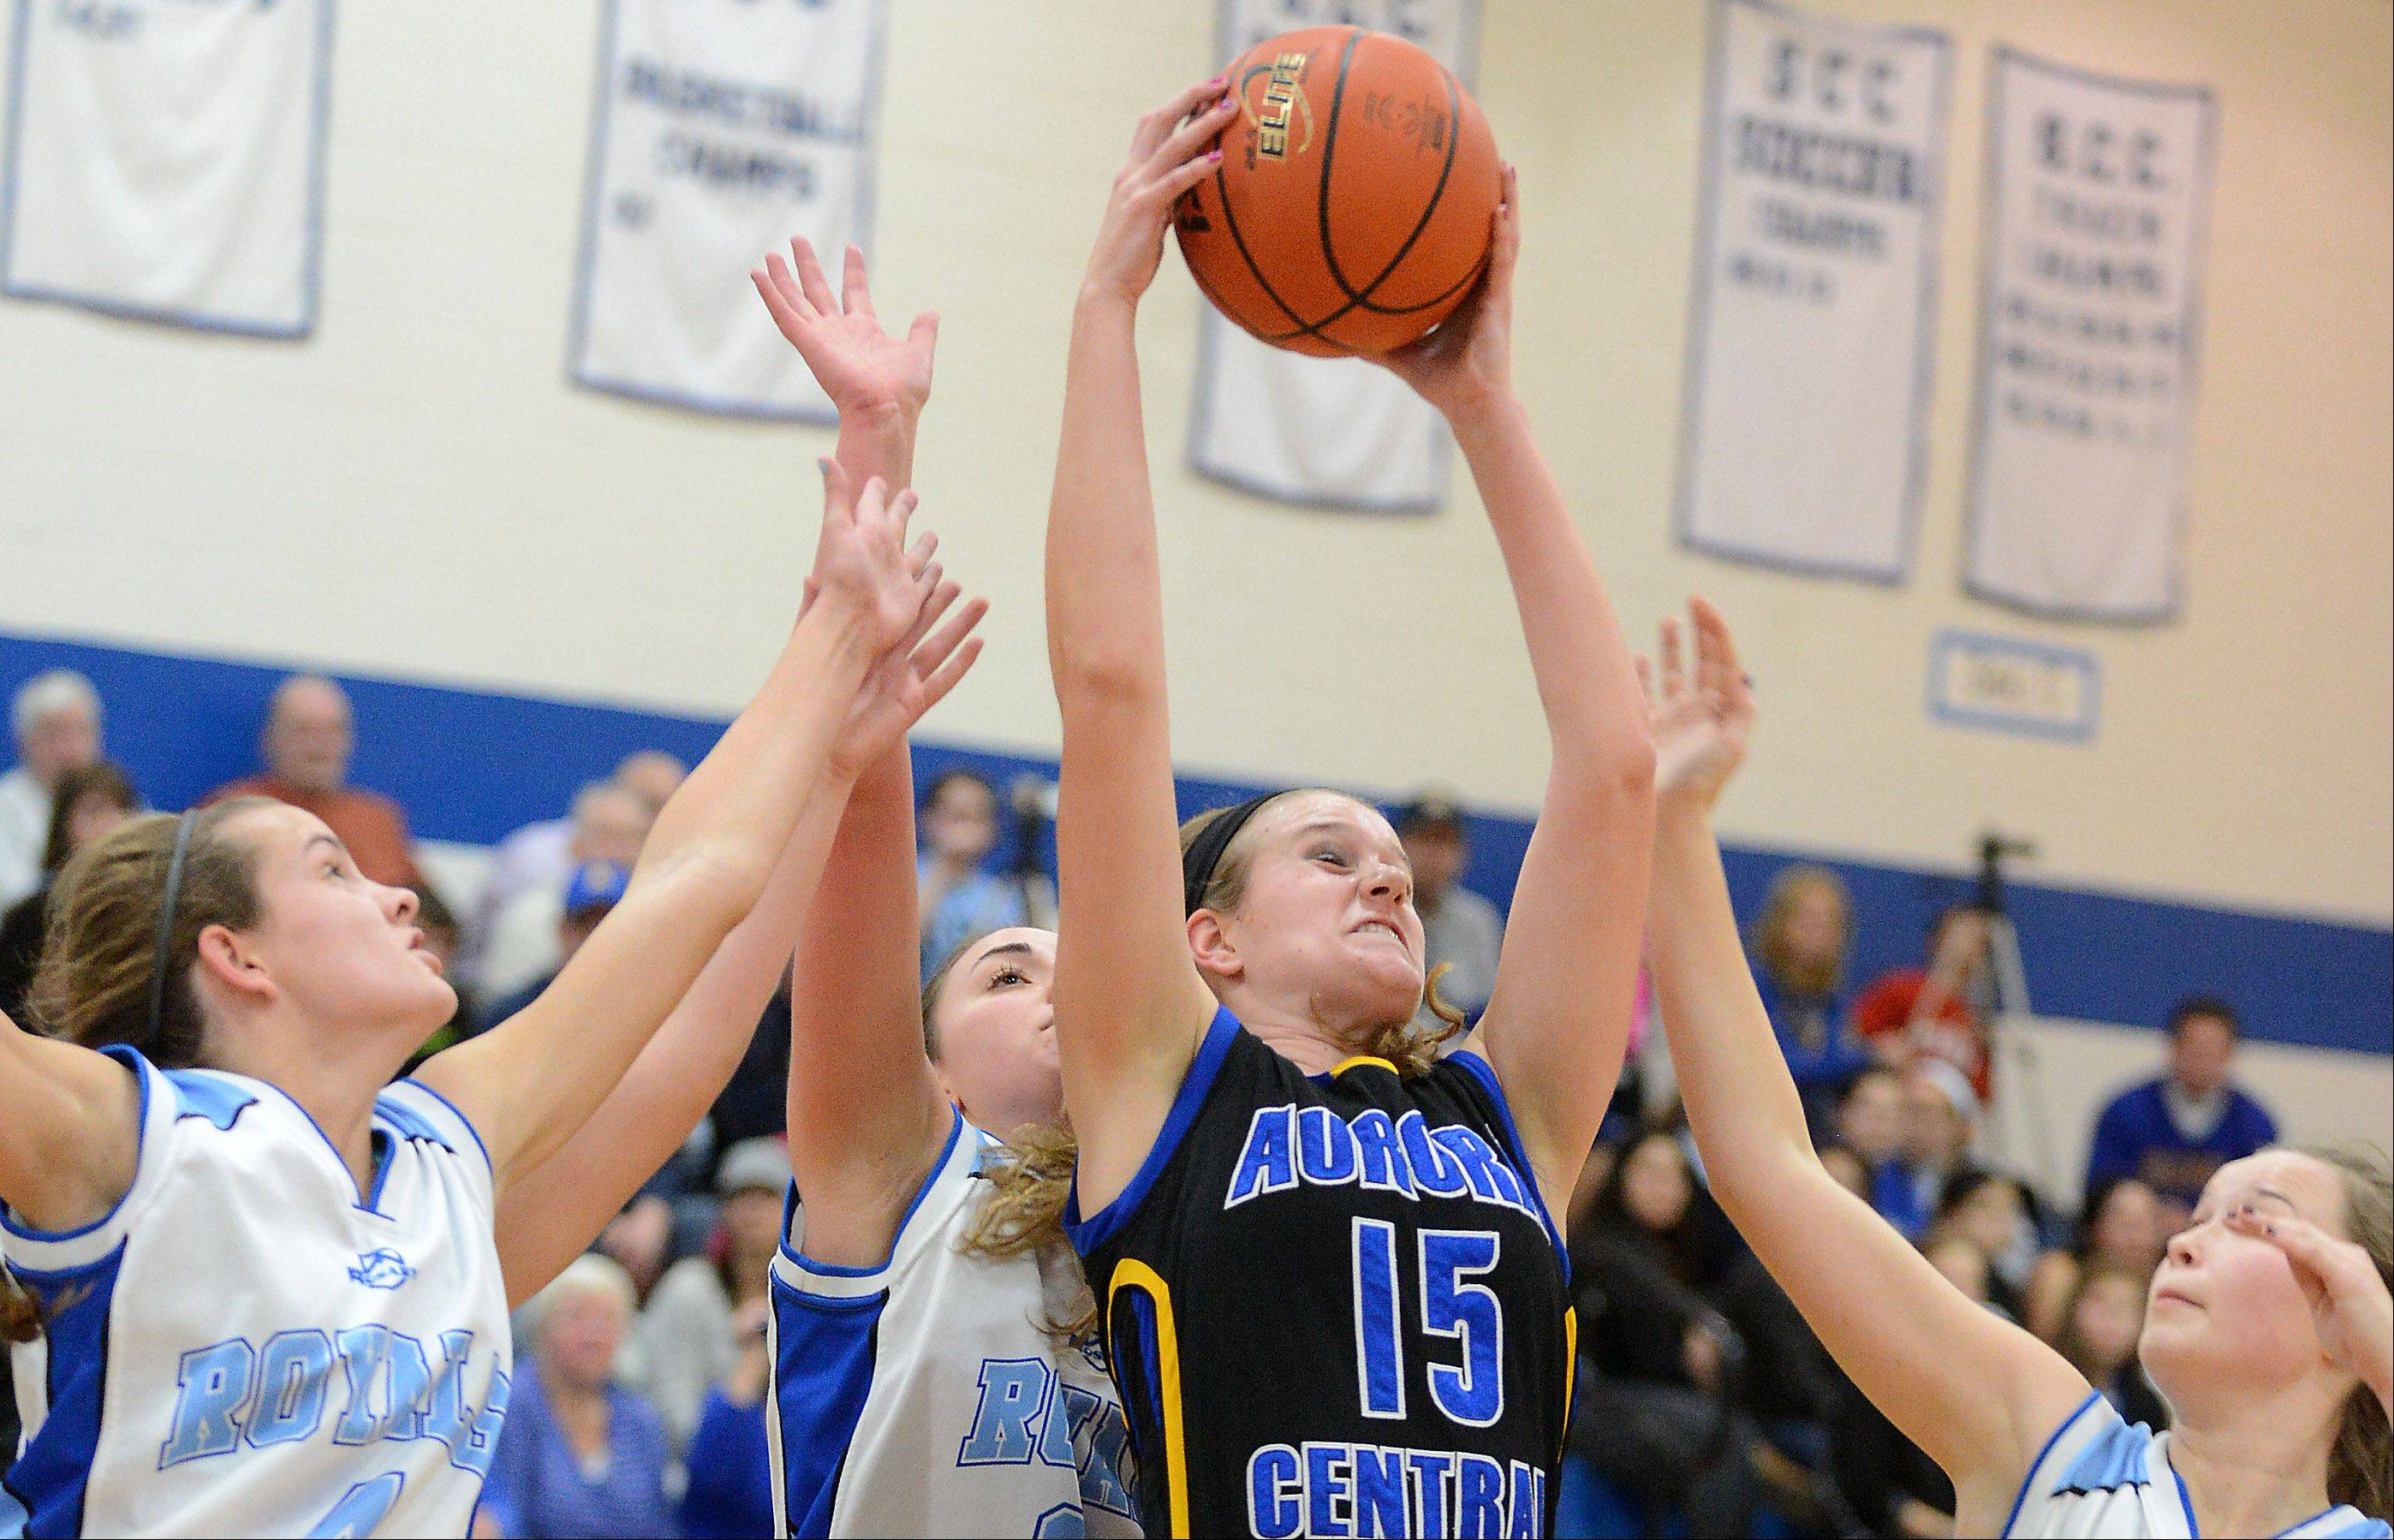 Aurora Central Catholic's Natalie Droeske pulls down a rebound while surrounded by Rosary players.